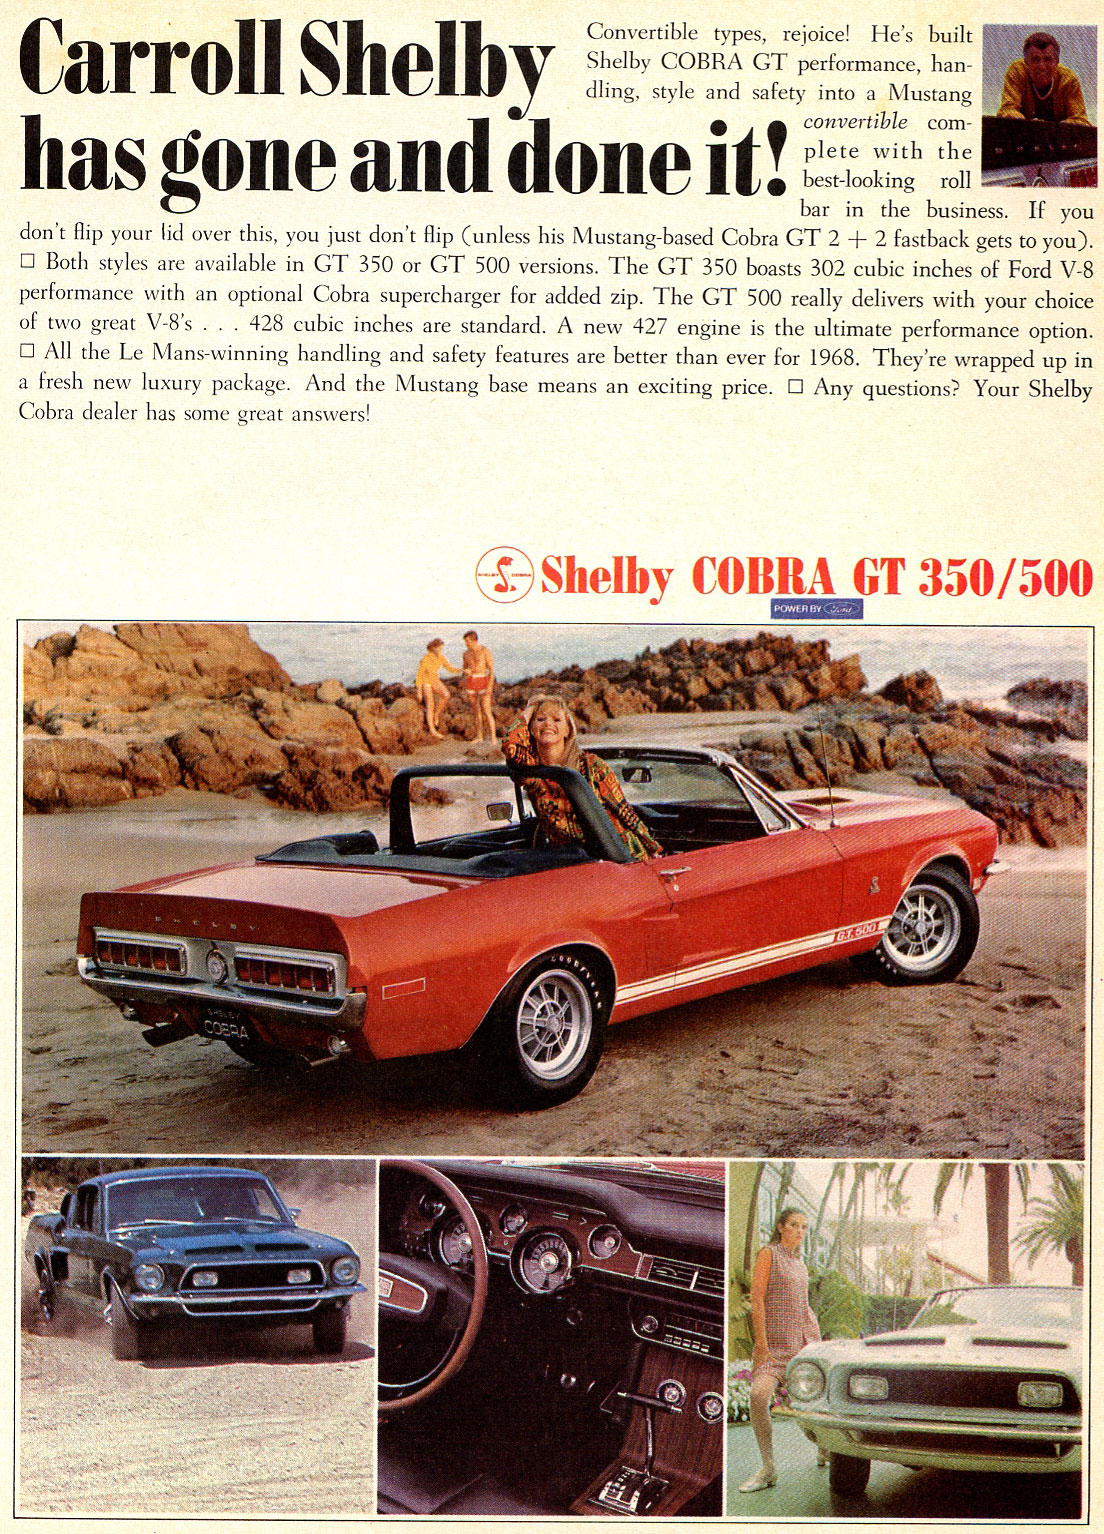 Carroll Shelby has gone and done it!